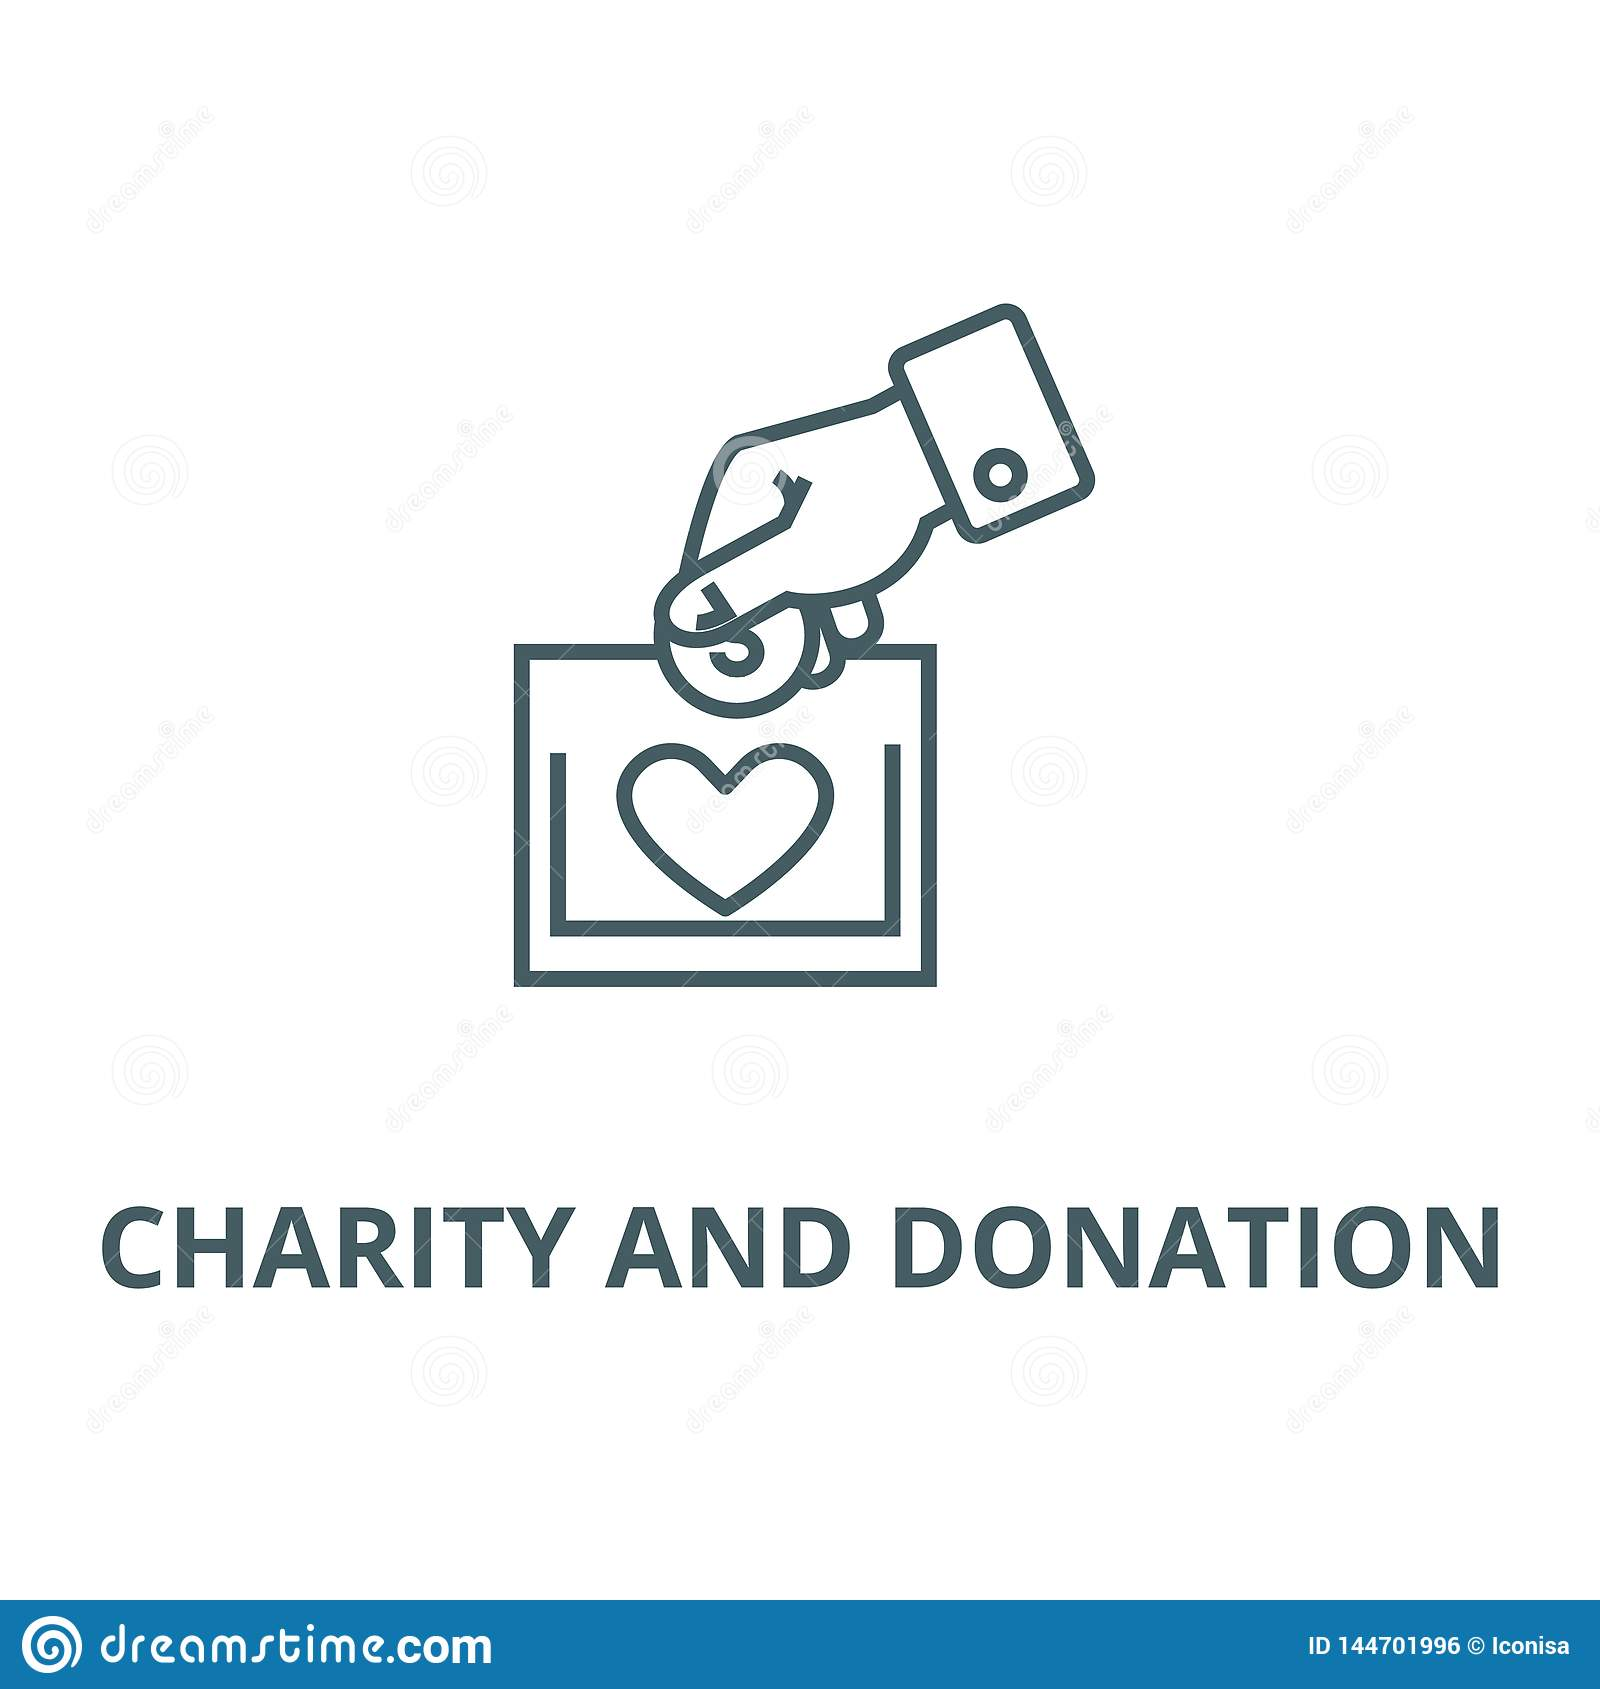 Charity and donation line icon, vector. Charity and donation outline sign, concept symbol, illustration